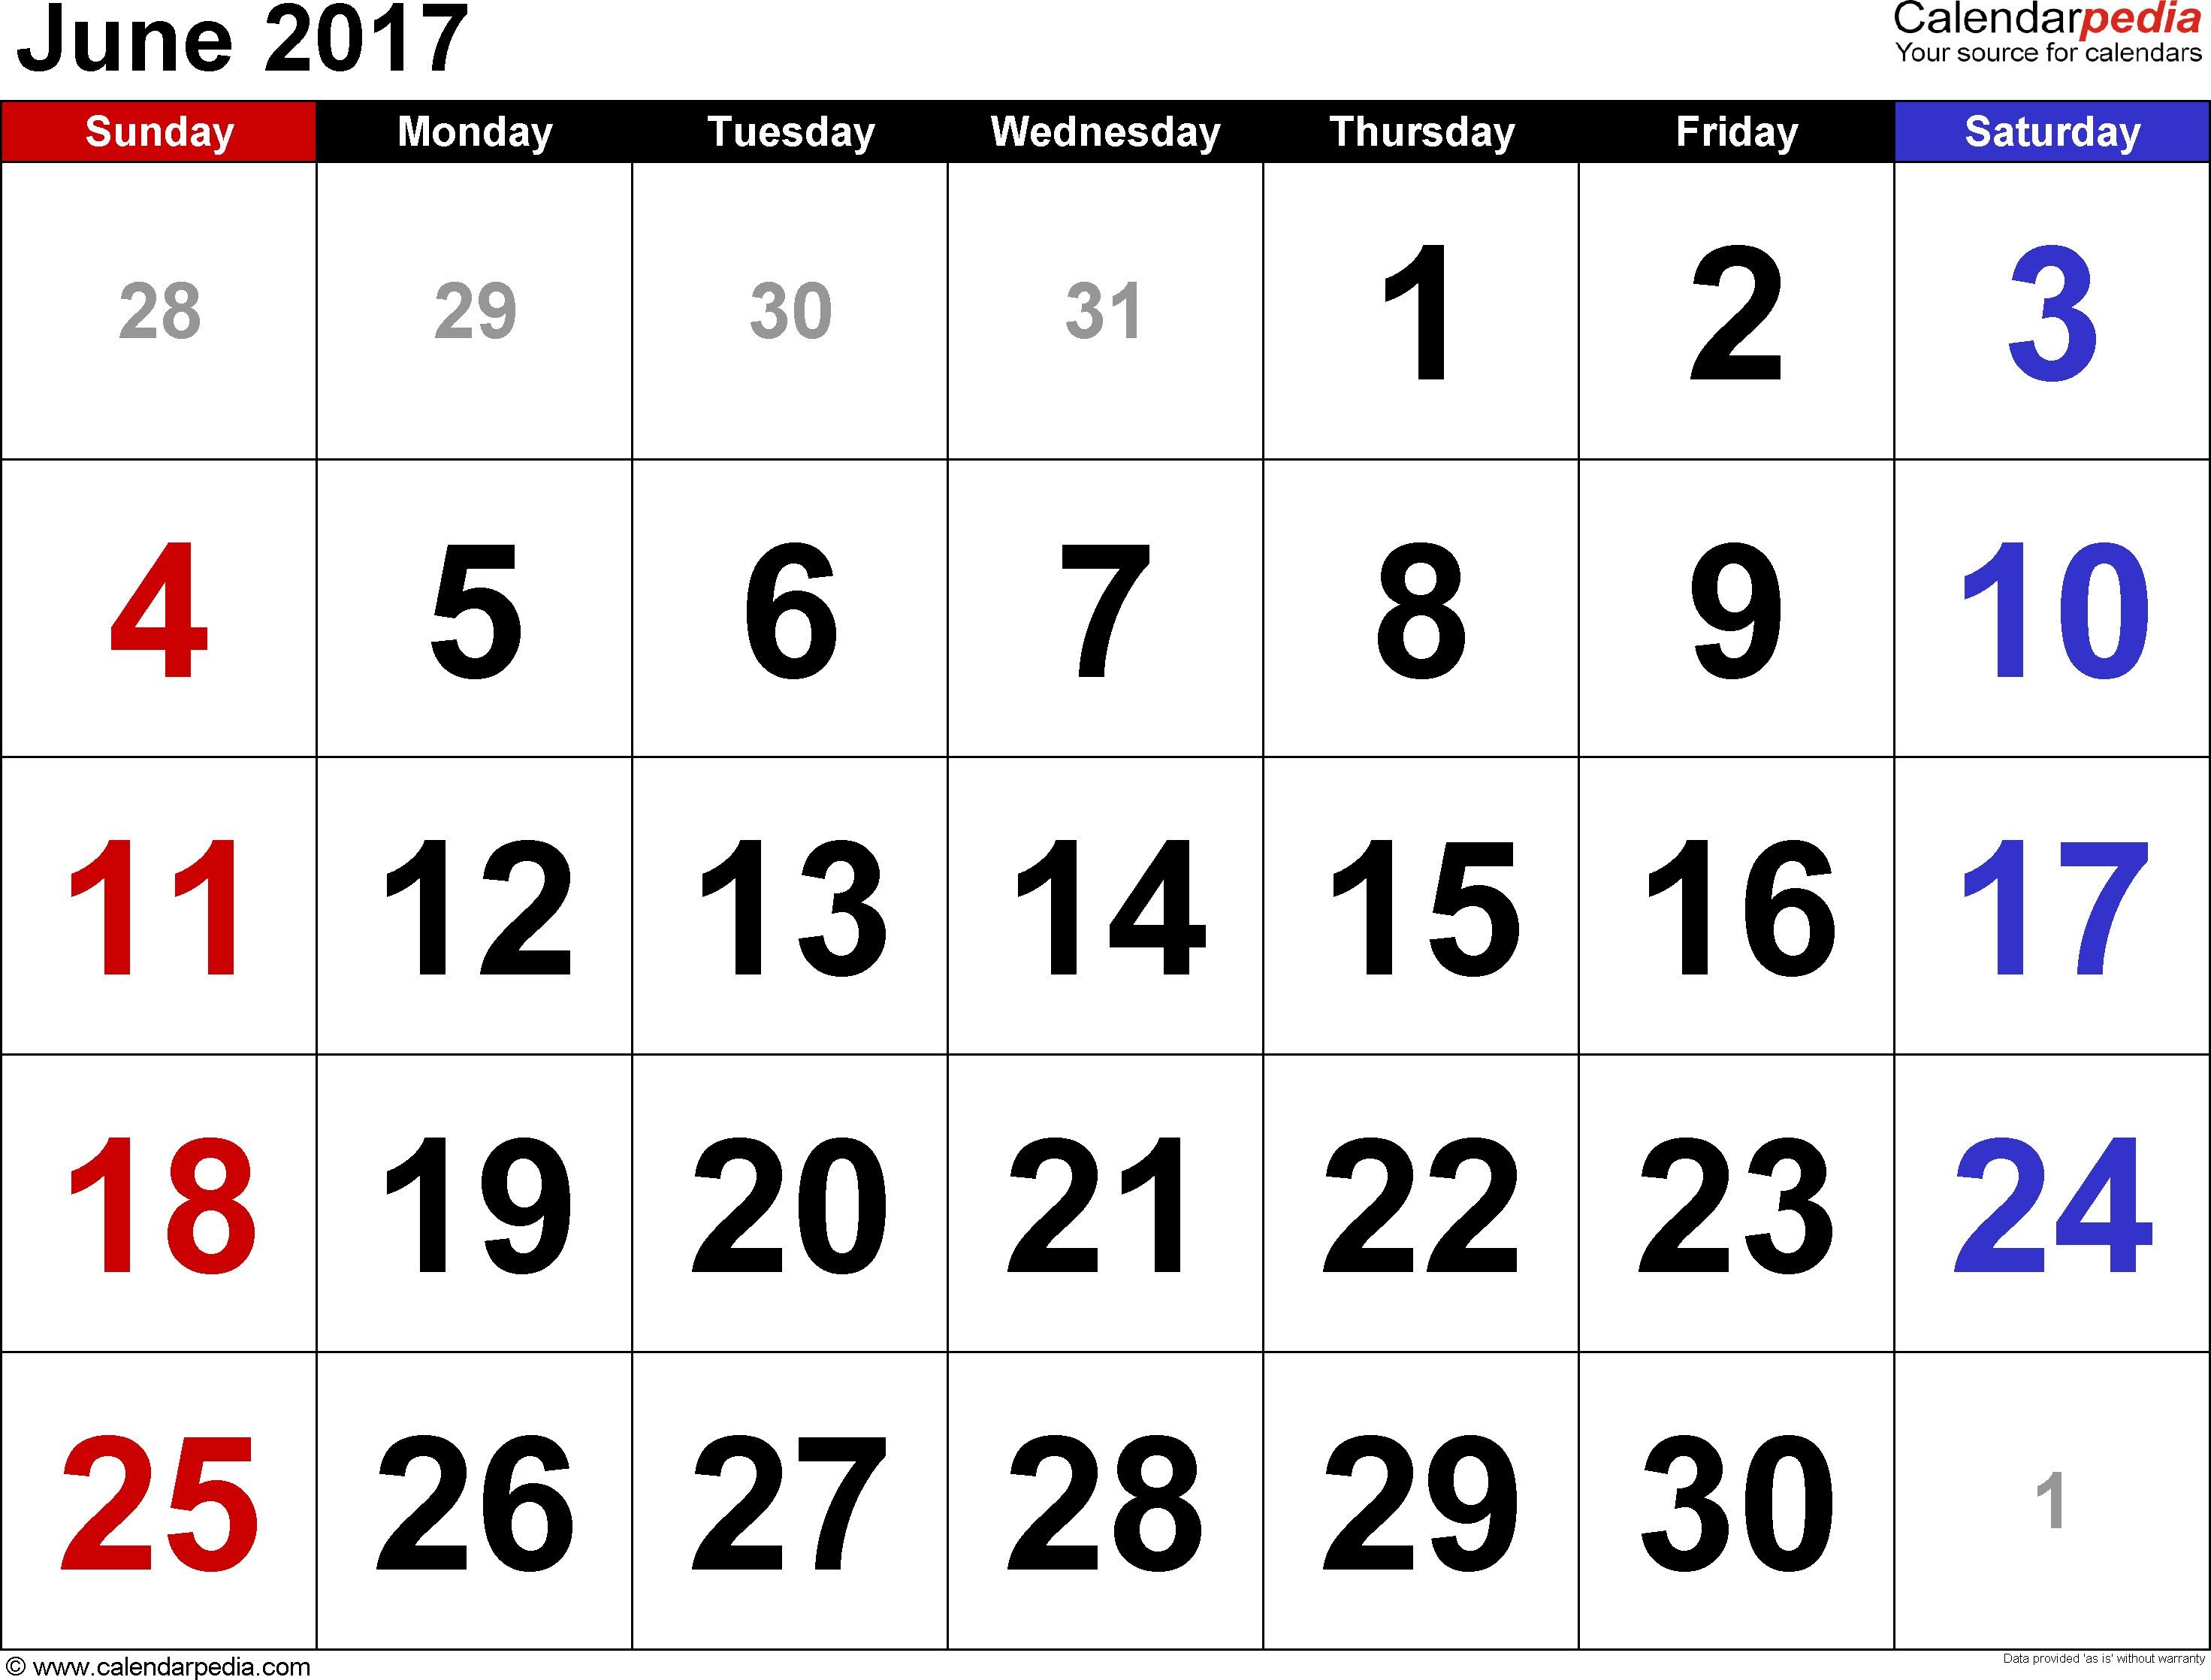 Calendario 2019 Colombia Con Feriados Más Actual Holidays In July August 2018 Bestholidaydeals Co Of Calendario 2019 Colombia Con Feriados Recientes Calendario 2019 Fevereiro Marco February 2019 Calendar T